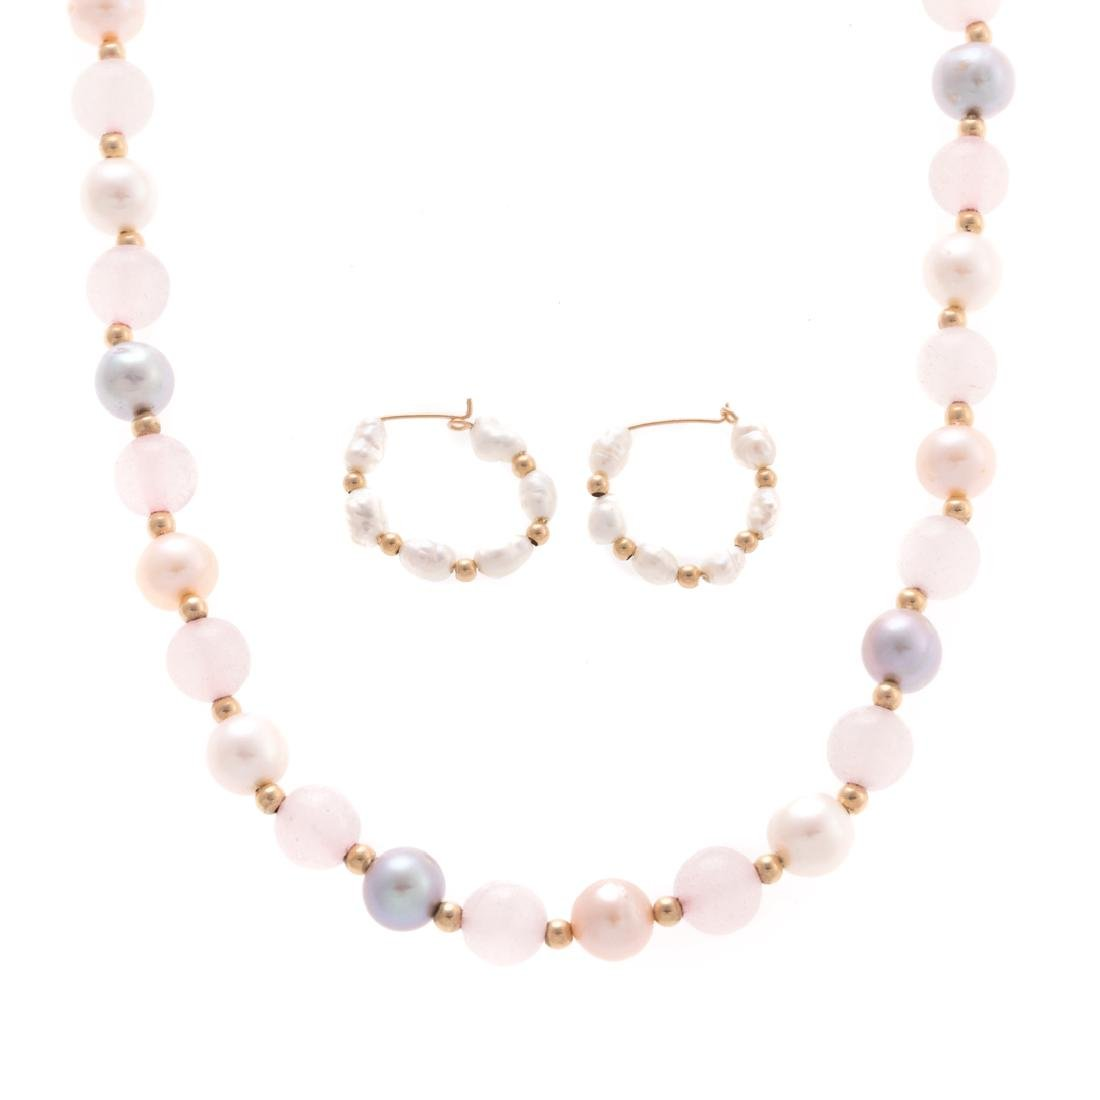 A Lady's Pearl Beaded Necklace with Pearl Earrings